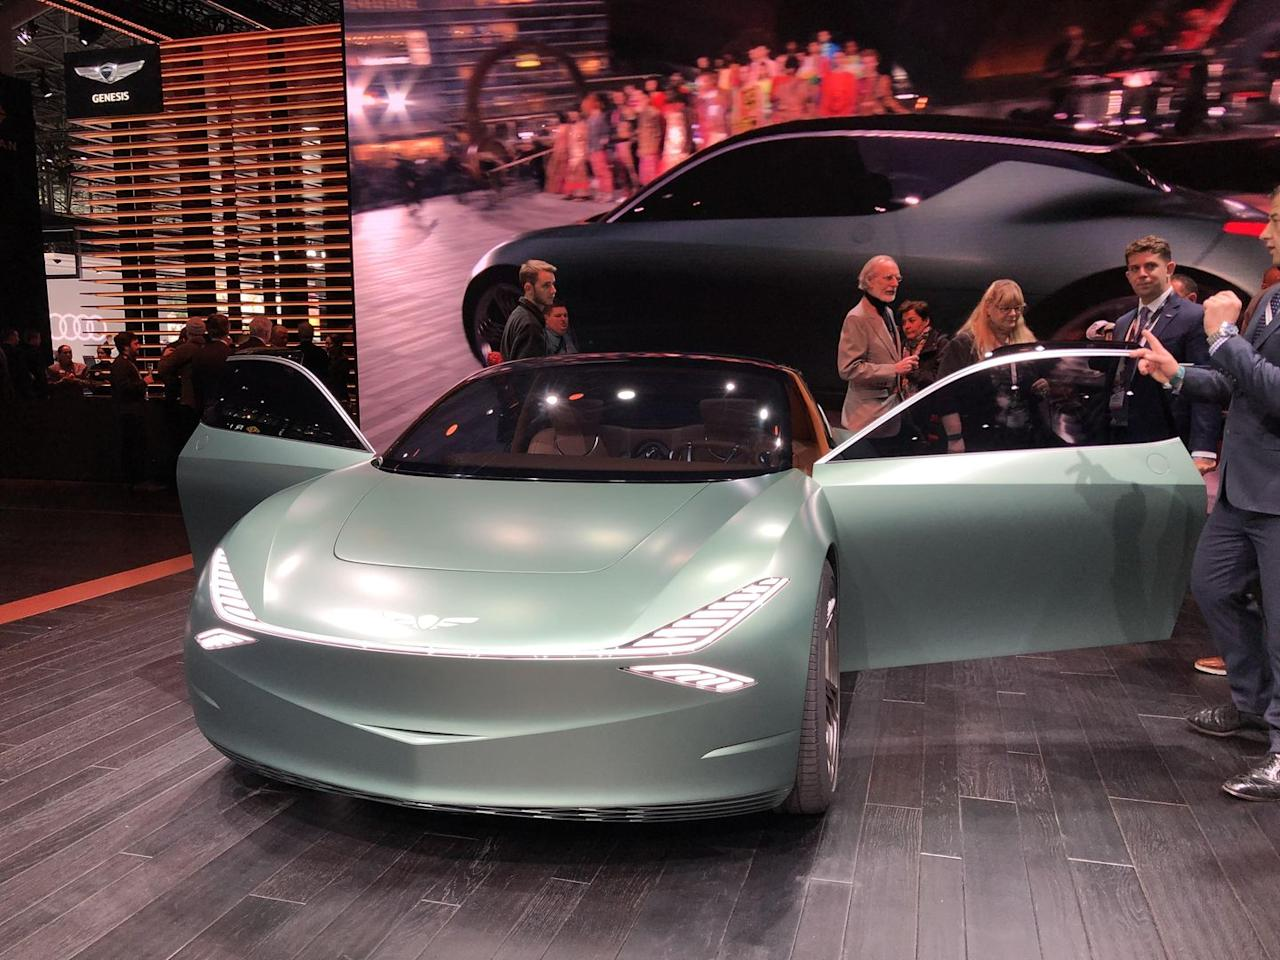 """<p>Let us take a moment to praise one of the greatest-nay, <em>the</em> greatest-auto show tradition, and that is bizarre concept cars that automakers have no intention of making. </p><p>And the best of New York 2019 might be the <a href=""""https://www.roadandtrack.com/car-shows/new-york-auto-show/a27168704/genesis-mint-concept-new-york-auto-show/"""">Mint Concept by Genesis</a> (the Hyundai car became its own brand a few years ago). This bright green design exercise has everything you could want: electric power, weird sunken door button, a charging port curiously located on the back of the car, gullwing back doors, and a sci-fi daydream interior. </p><p>Genesis won't actually build this car, but it's smart to imagine a design direction for city dwellers who want a vehicle that barely resembles today's anonymous crossovers.</p>"""